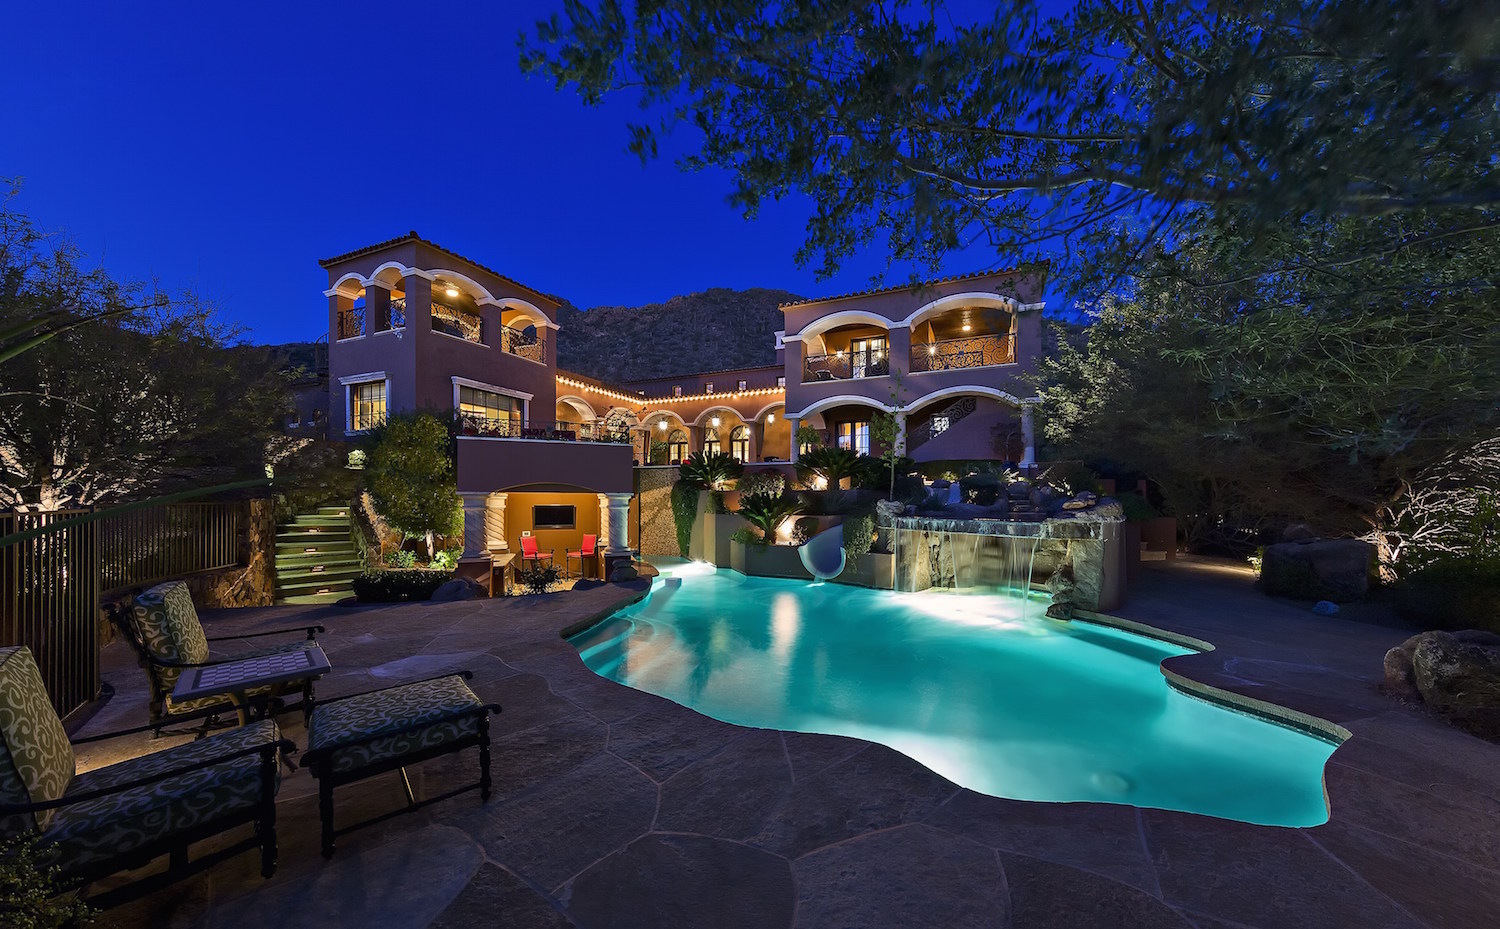 3 santa barbara style luxury homes for sale in arizona for Fine homes for sale